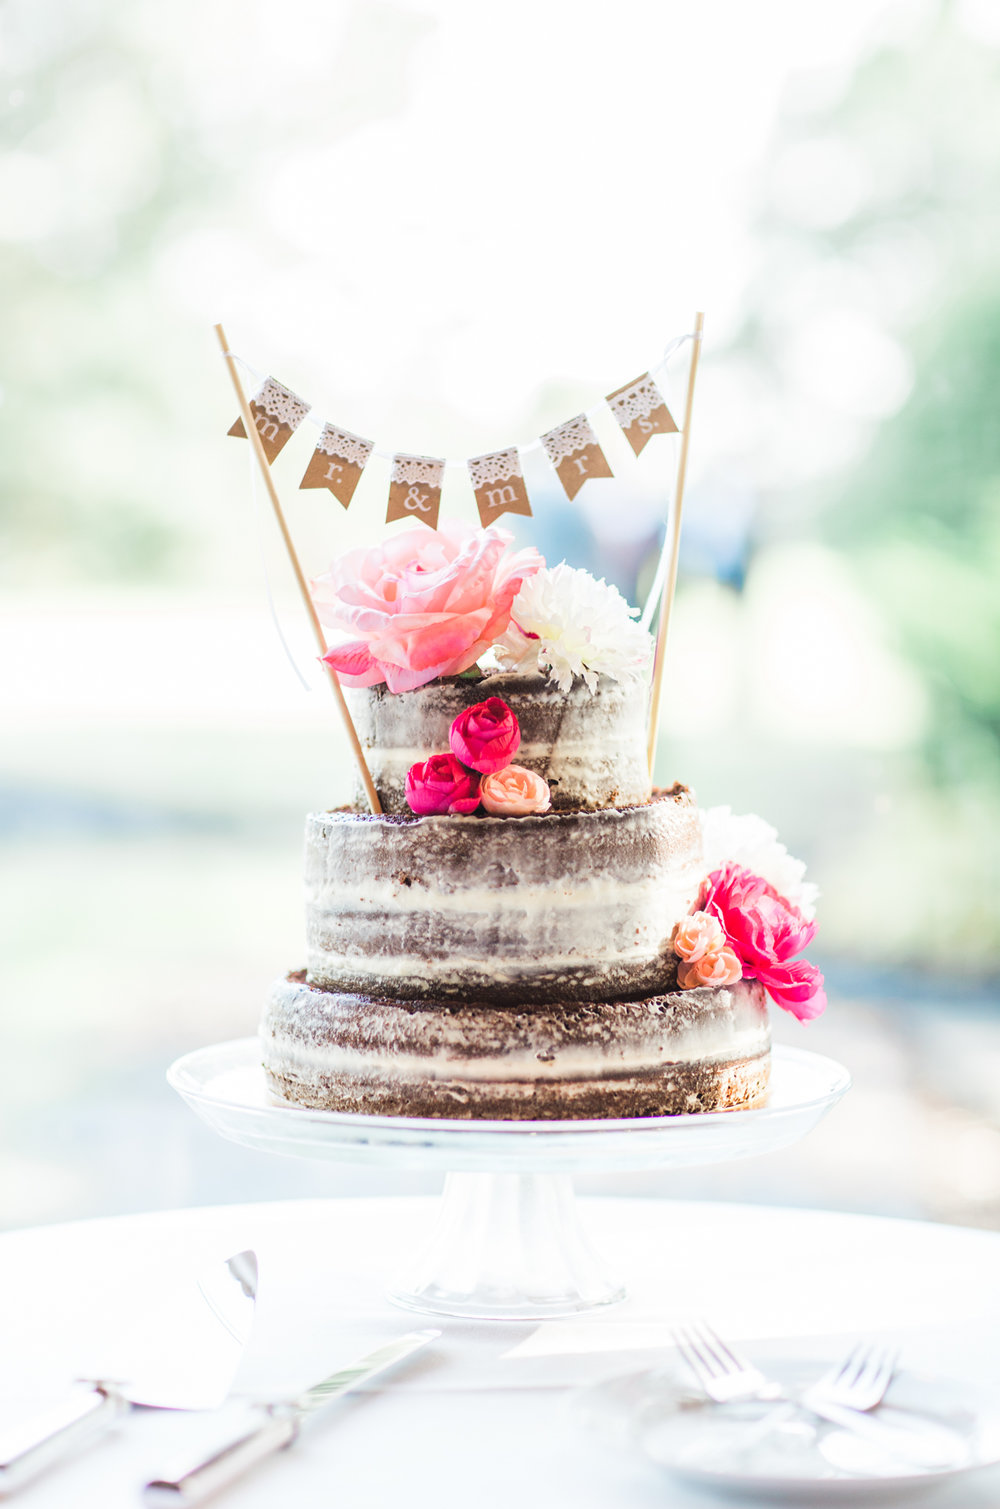 Naked chocolate wedding cake with pink flowers and burlap banner topper